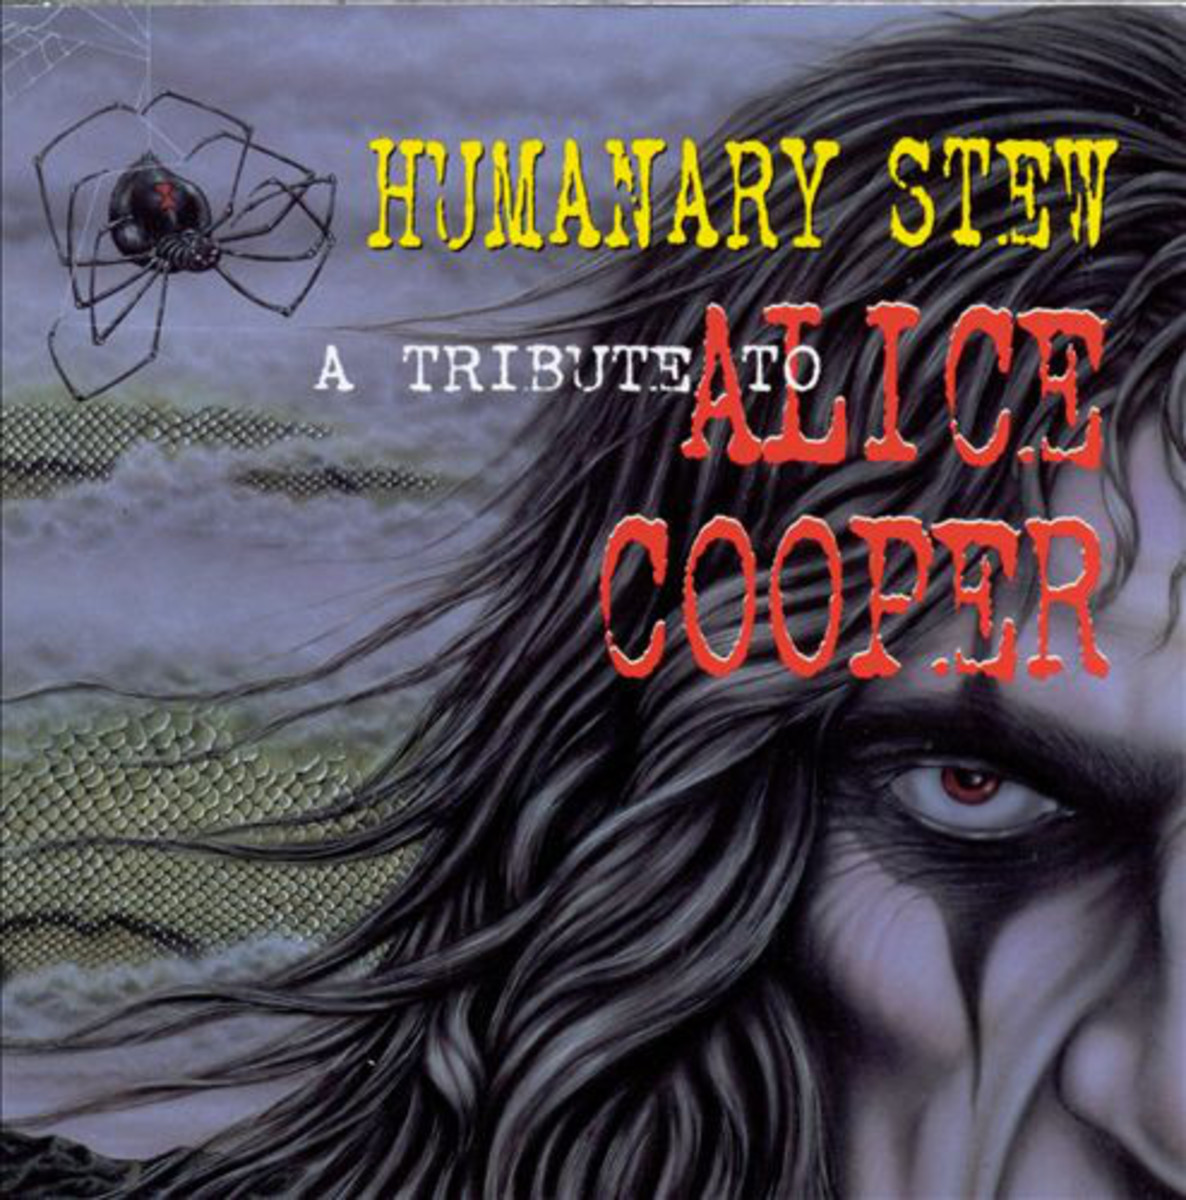 humanary-stew-a-tribute-to-alice-cooper-review